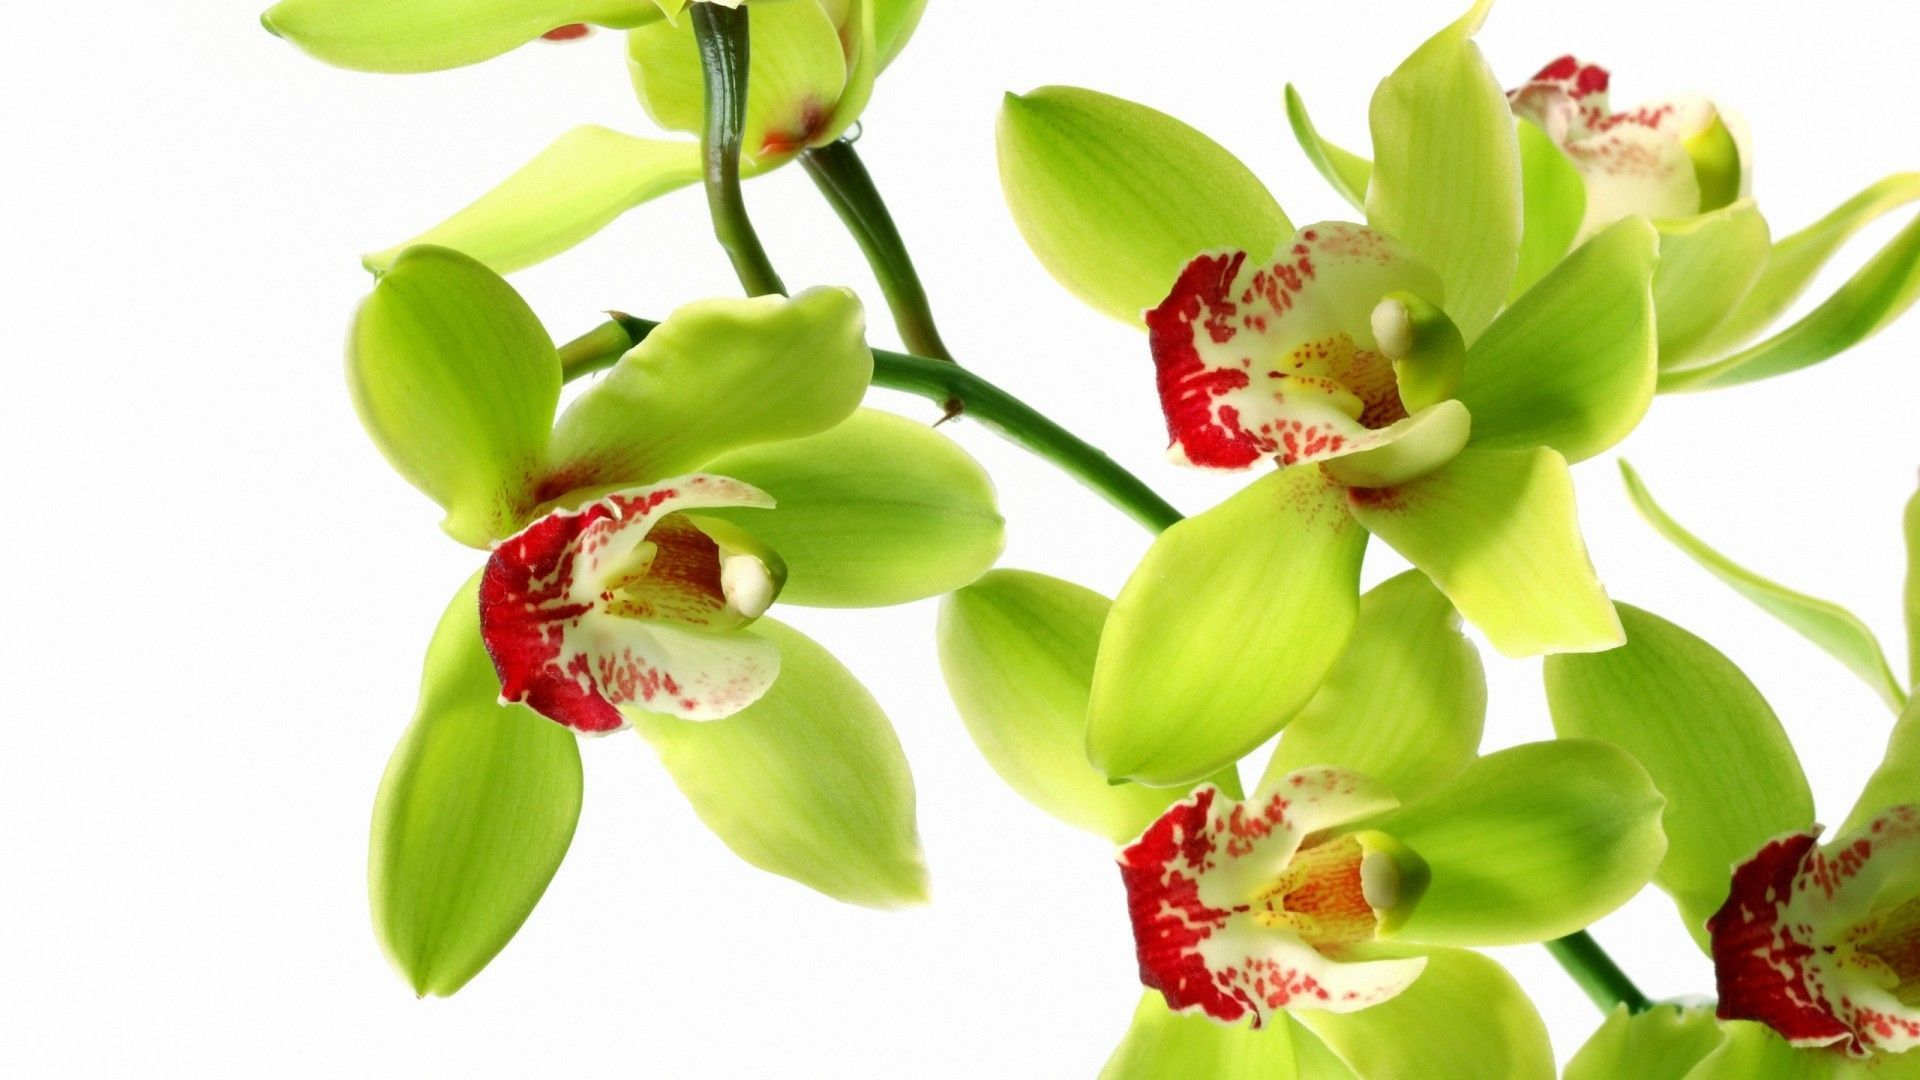 Flower White Orchid Wallpaper Abstract Image Wallwuzz Hd Wallpaper Orchid Wallpaper Green Orchid Orchids